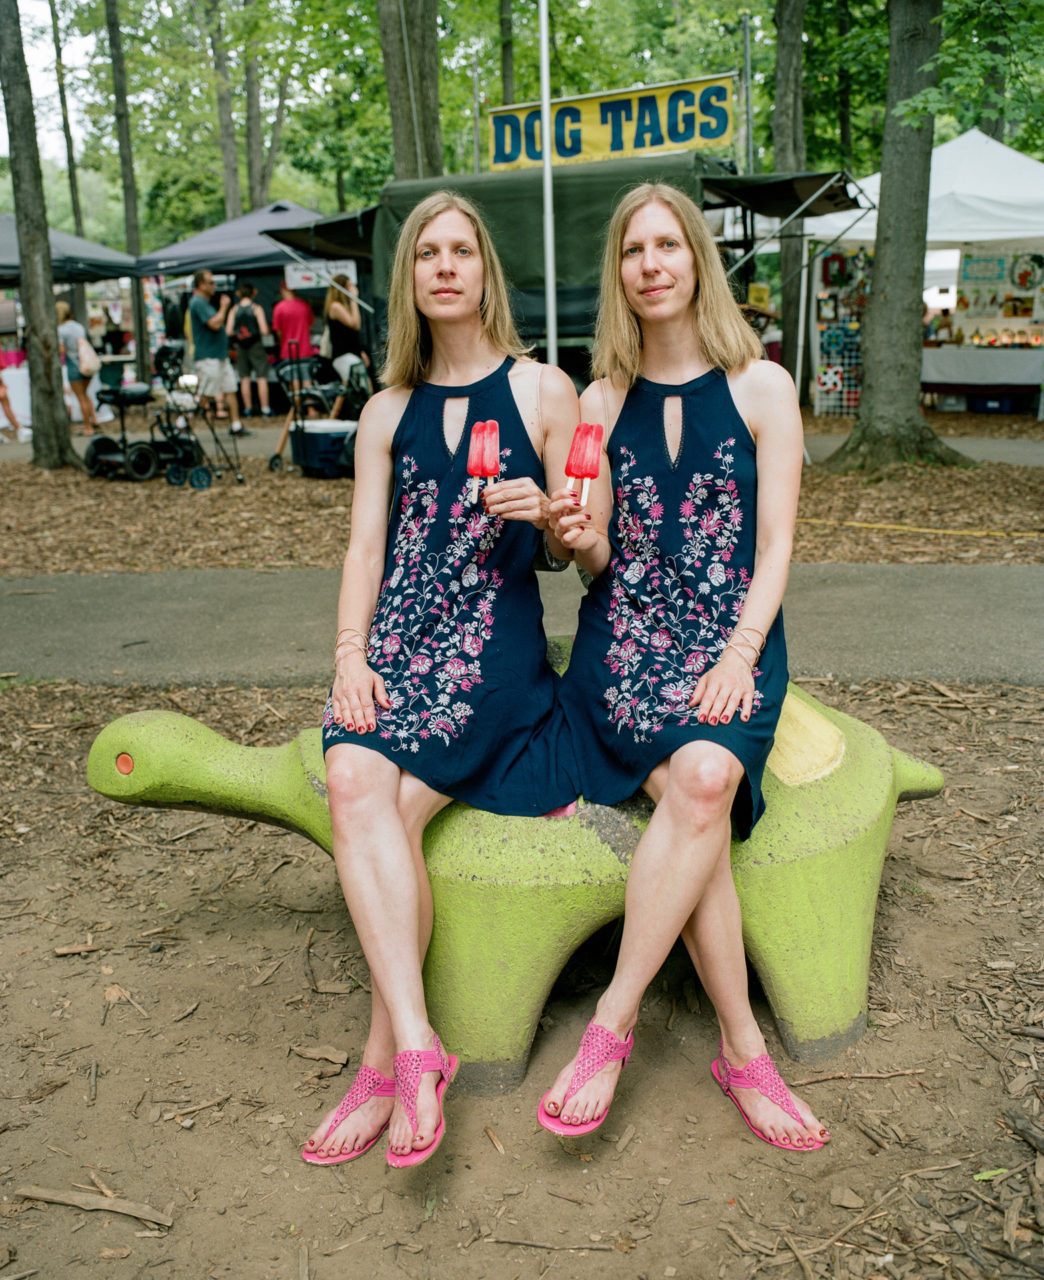 Linda and Laura, 41, of Sheffield, Ohio, have attended this festival every year since they were 3 years old. Linda's more outgoing and her sister more athletic.